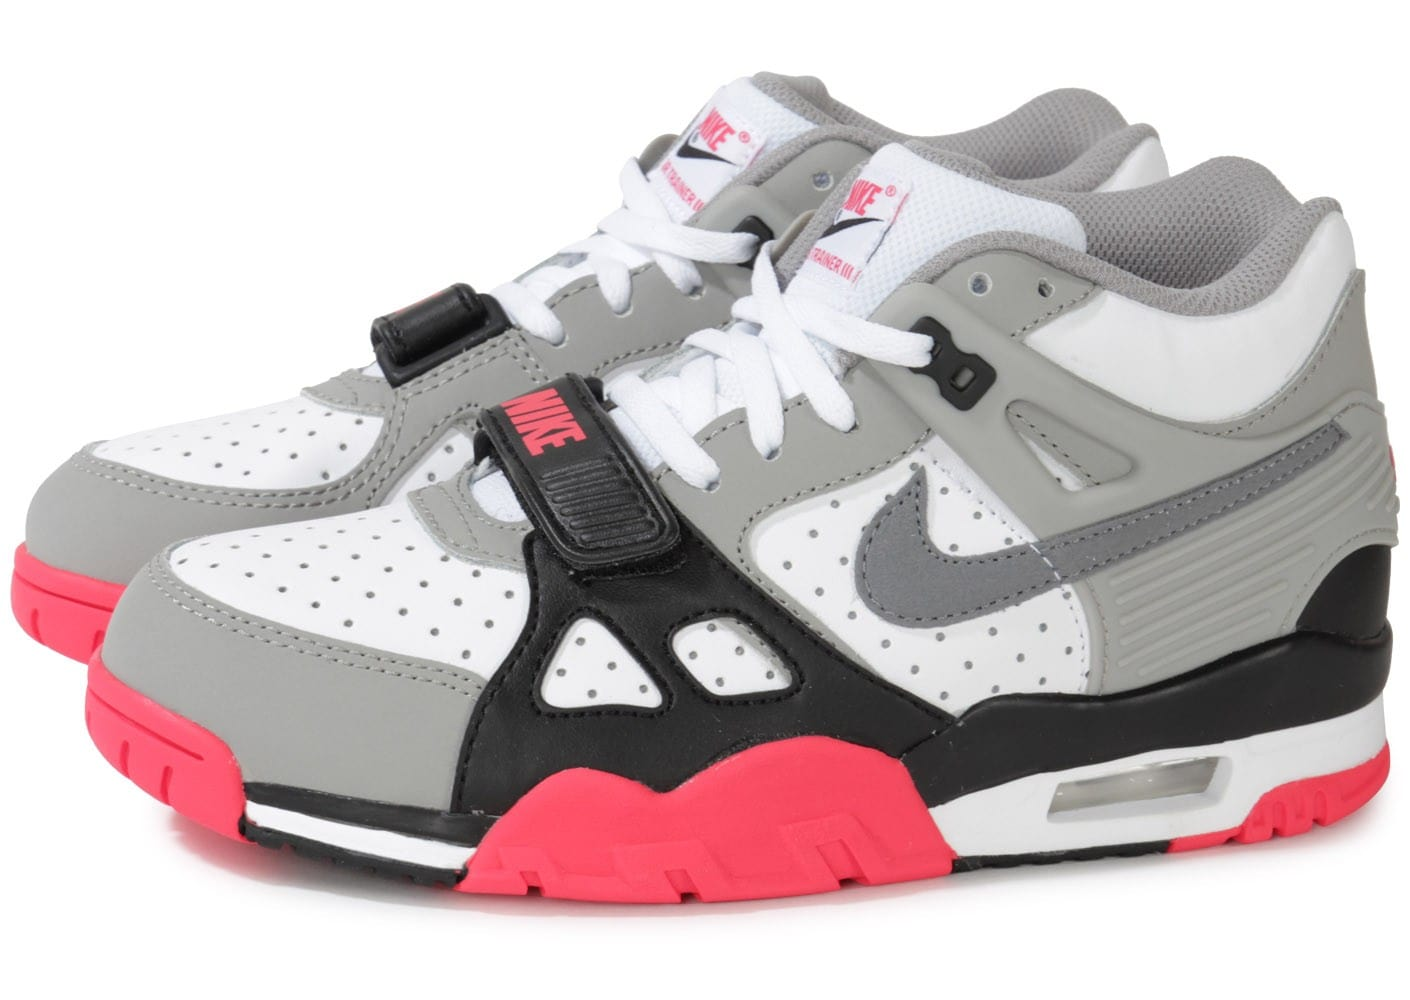 cheap for discount 787fd 52bbb Baskets Nike Nike Air Trainer 1 Low St Gris vue portées chaussures. Cliquez  pour zoomer Chaussures Nike Trainer Sc Enfant Grise vue extérieure .